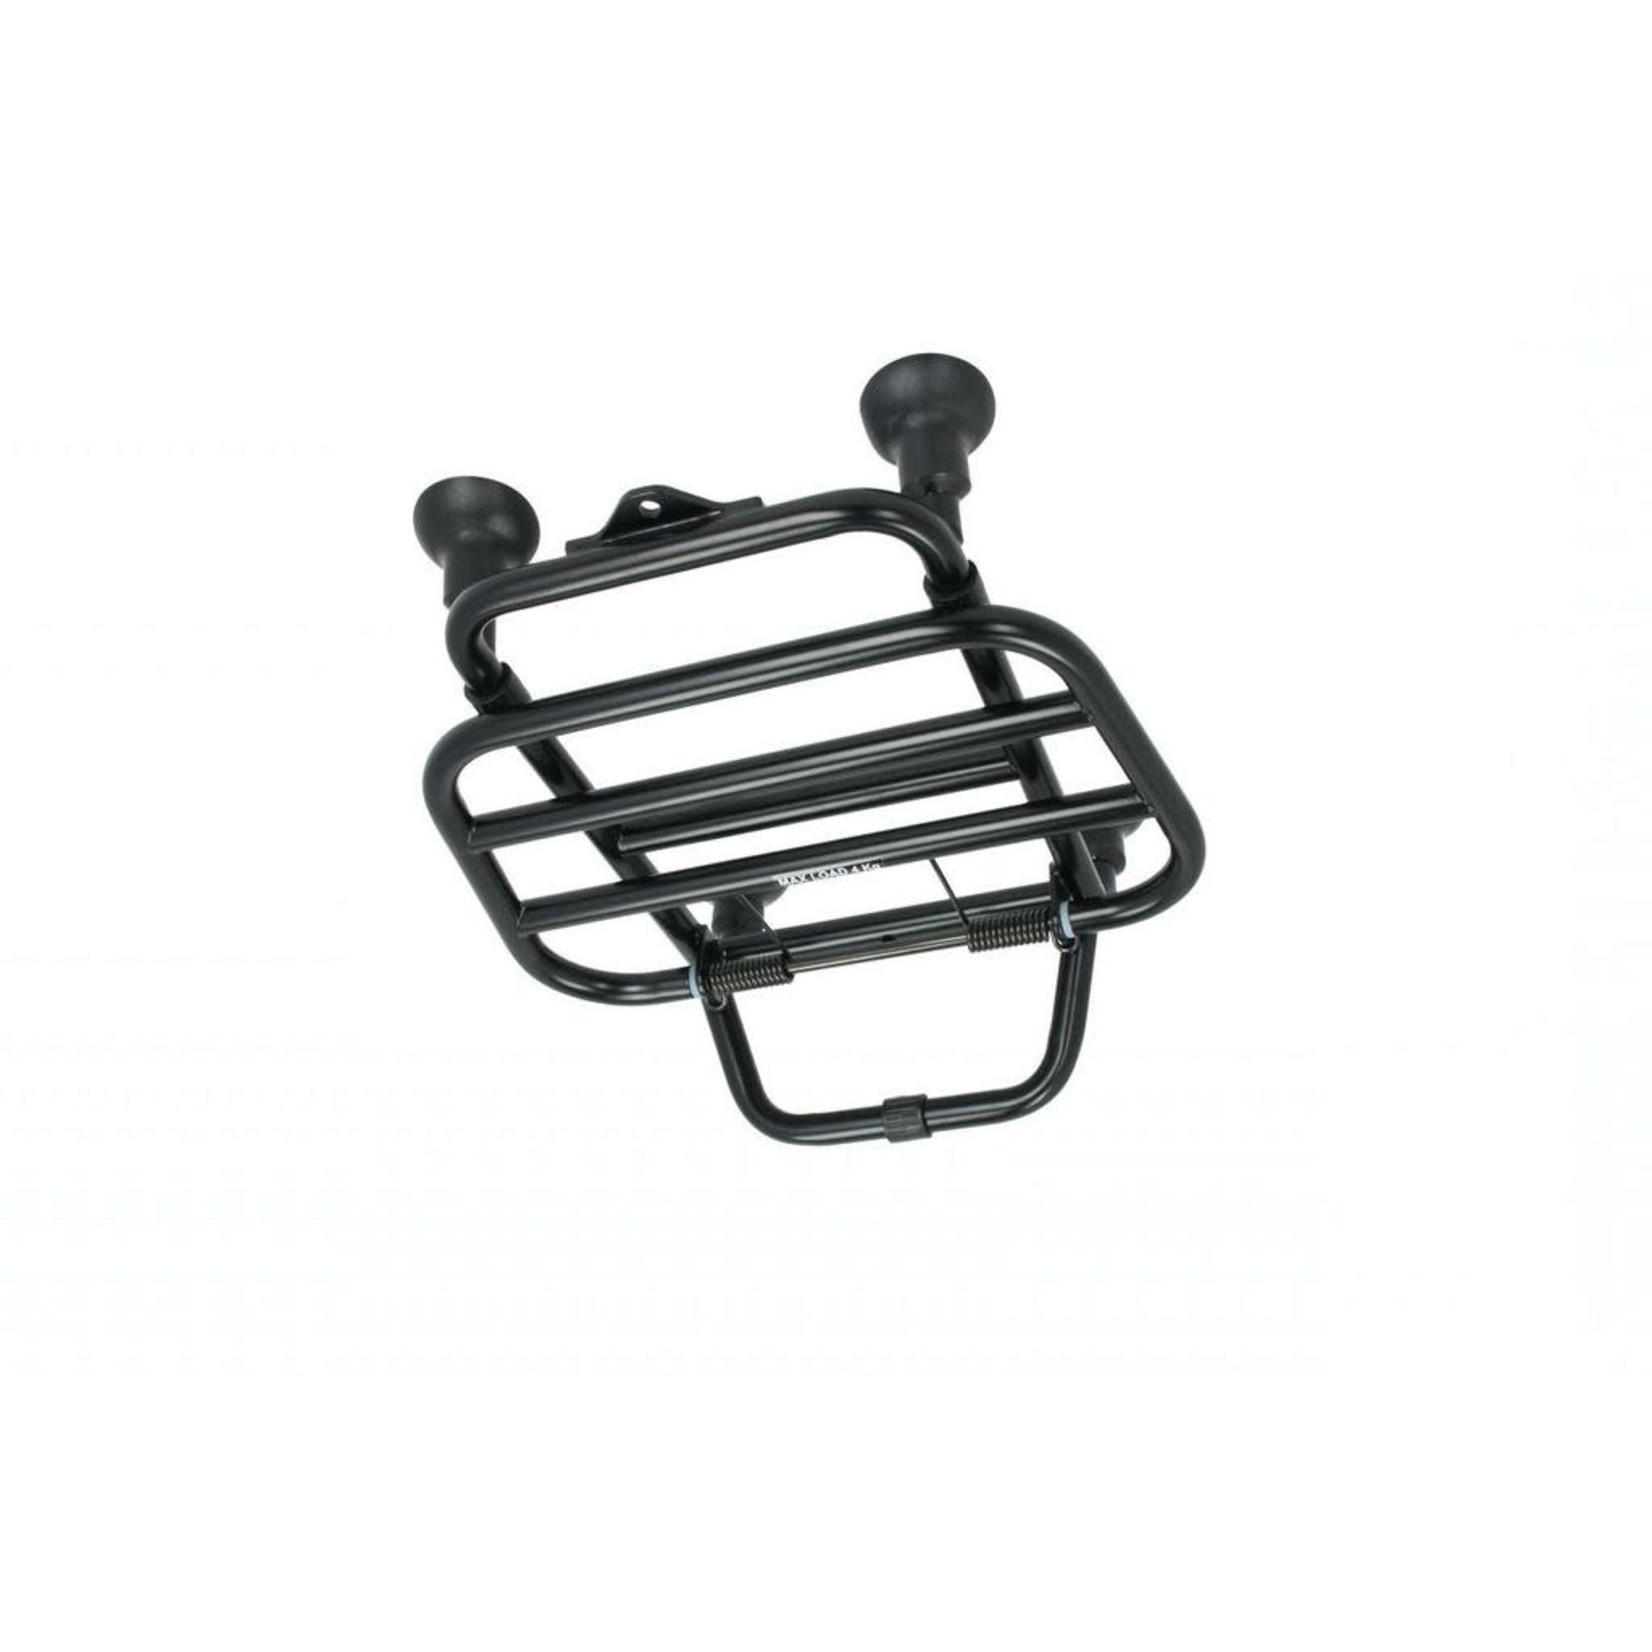 Accessories Rack, Front GTS/V300 HPE Black